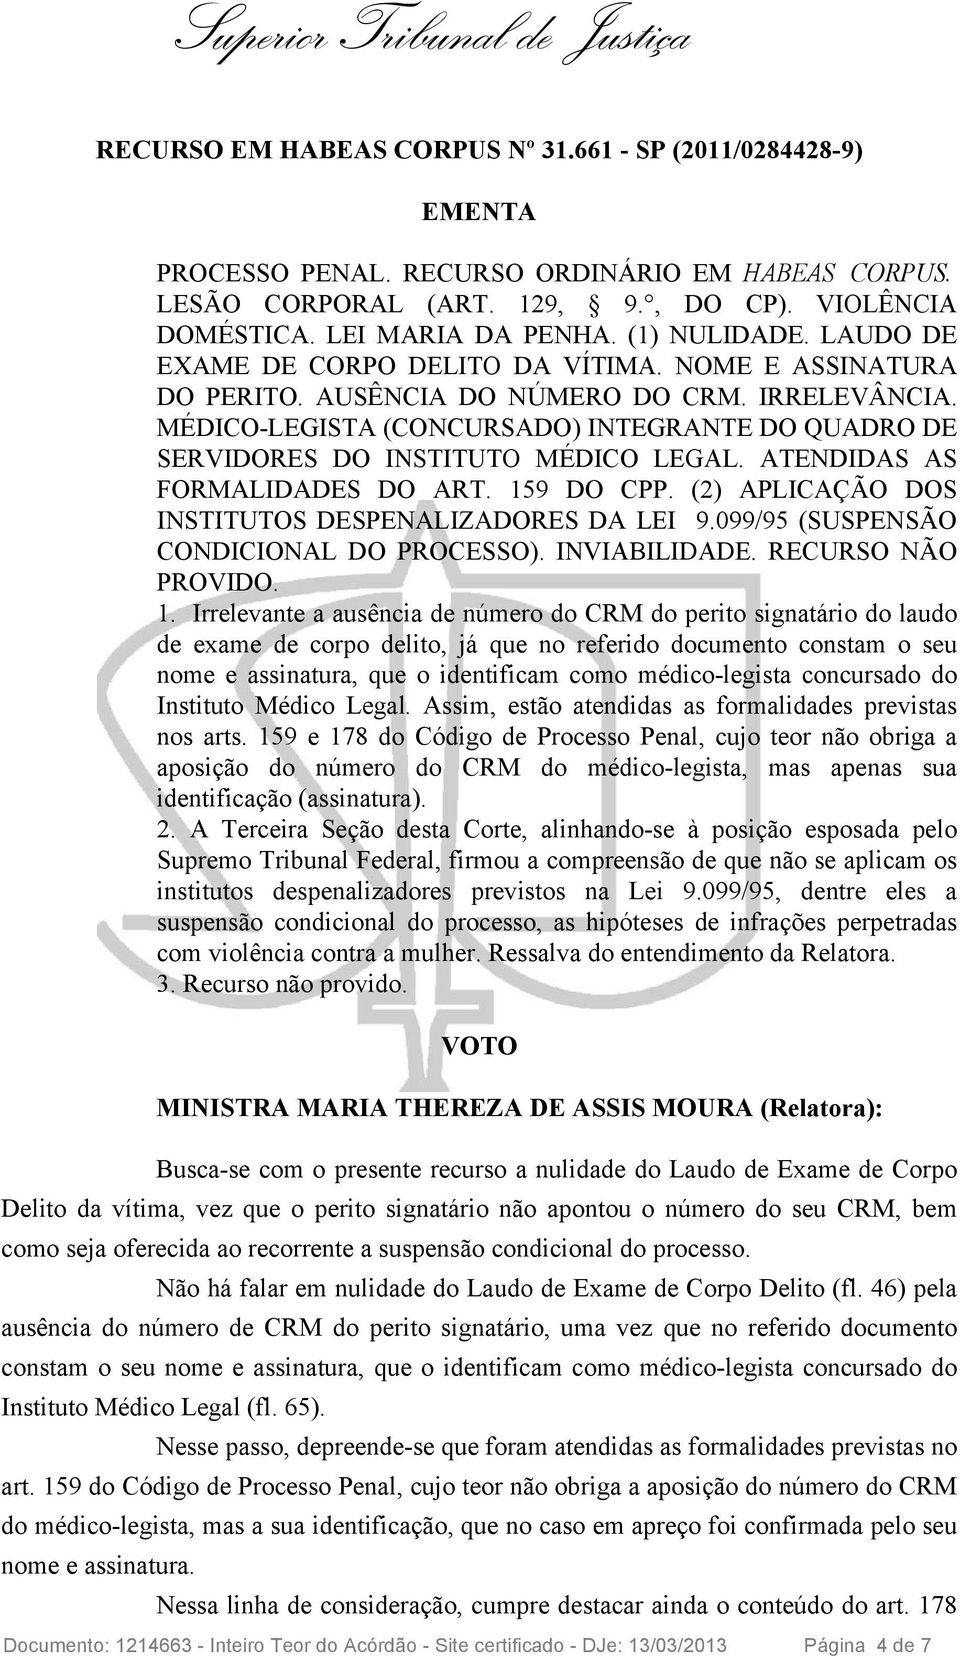 MÉDICO-LEGISTA (CONCURSADO) INTEGRANTE DO QUADRO DE SERVIDORES DO INSTITUTO MÉDICO LEGAL. ATENDIDAS AS FORMALIDADES DO ART. 159 DO CPP. (2) APLICAÇÃO DOS INSTITUTOS DESPENALIZADORES DA LEI 9.